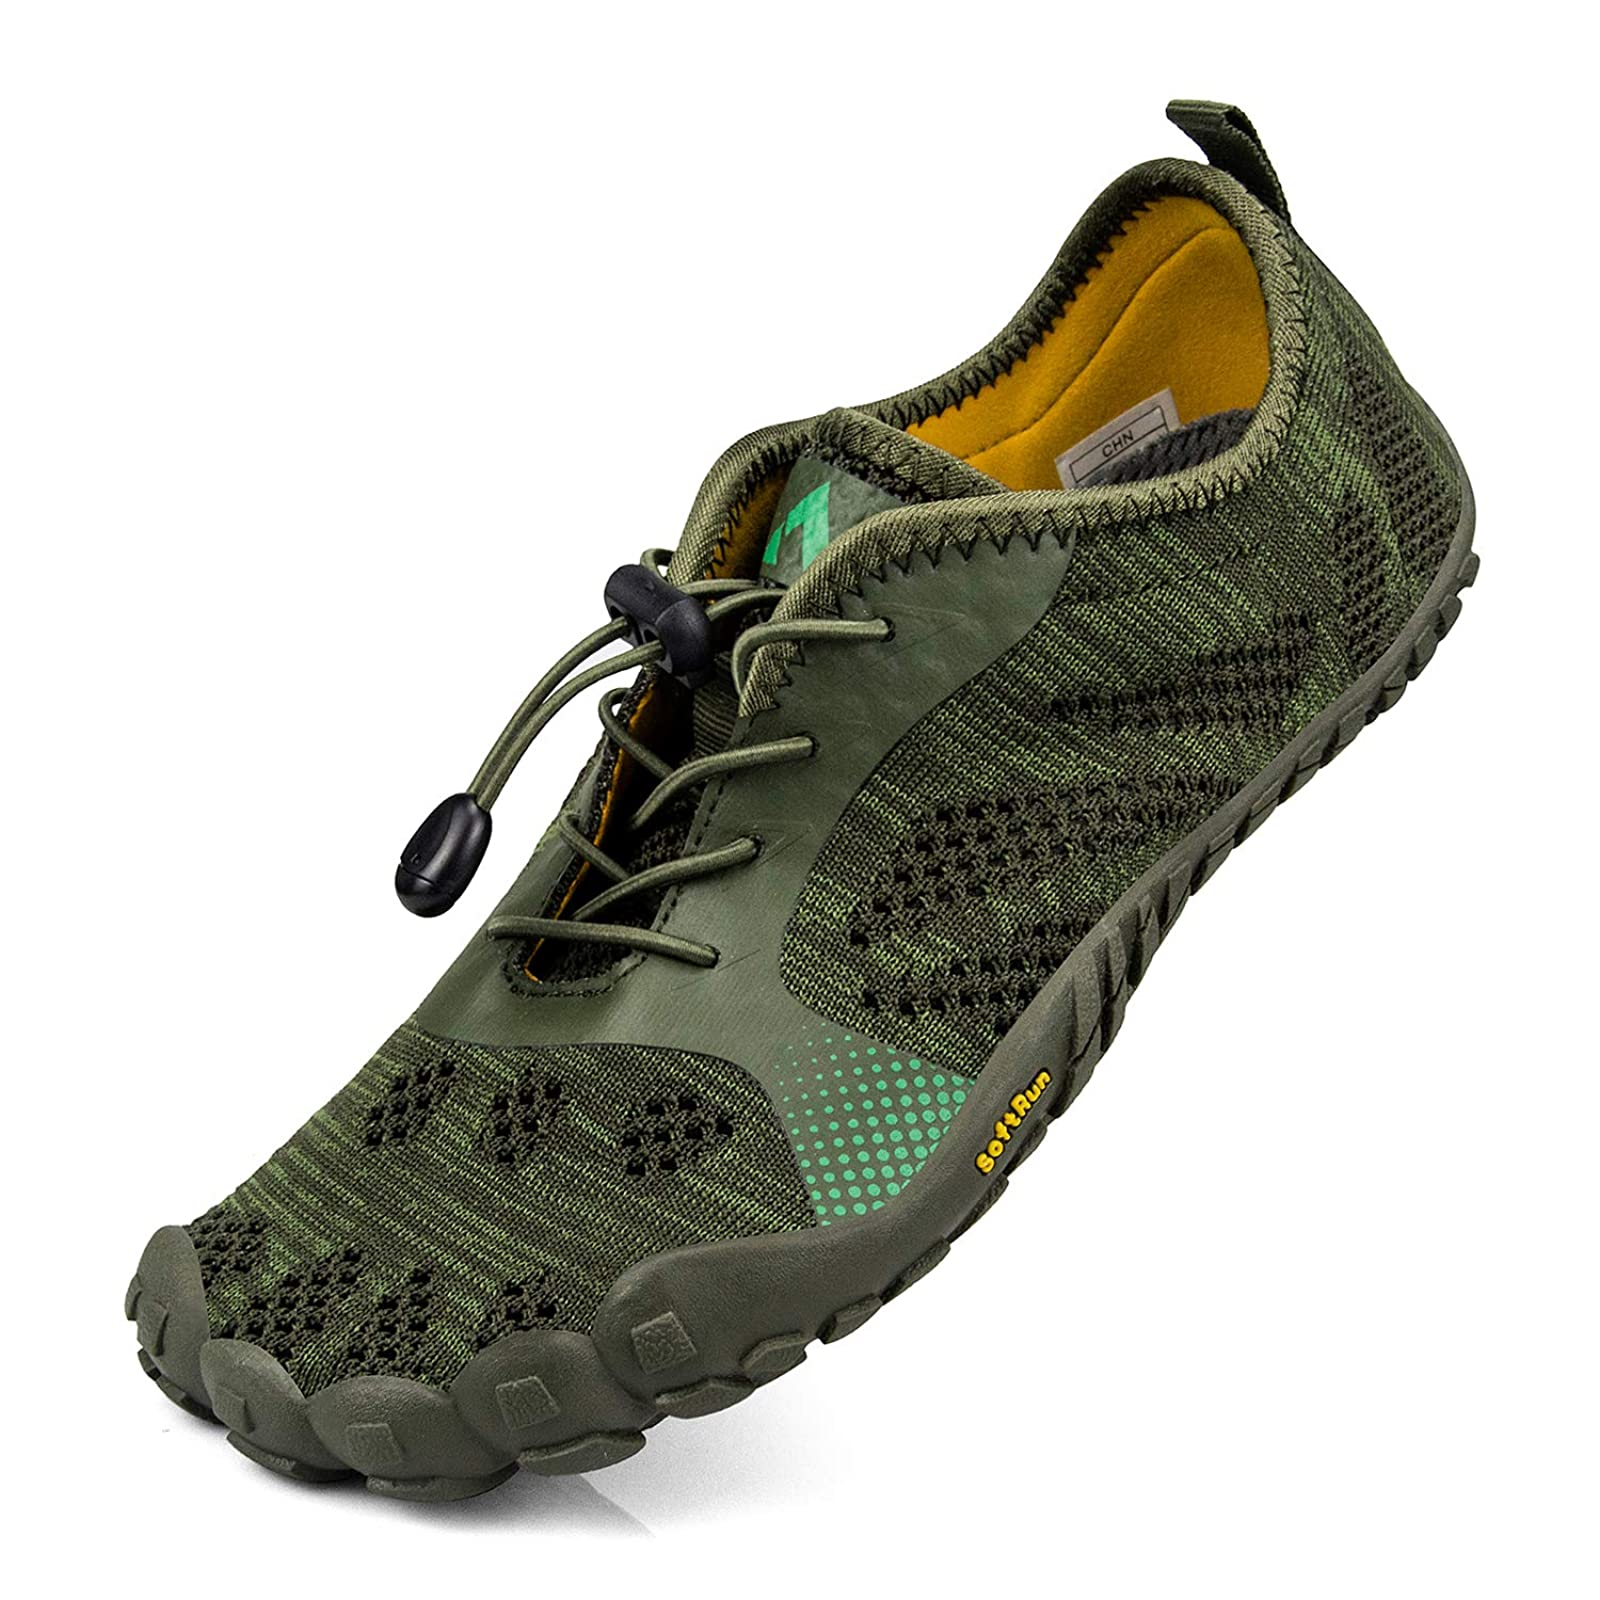 SouthBrothers Men's Trekking Shoes Hiking Mountain - 1